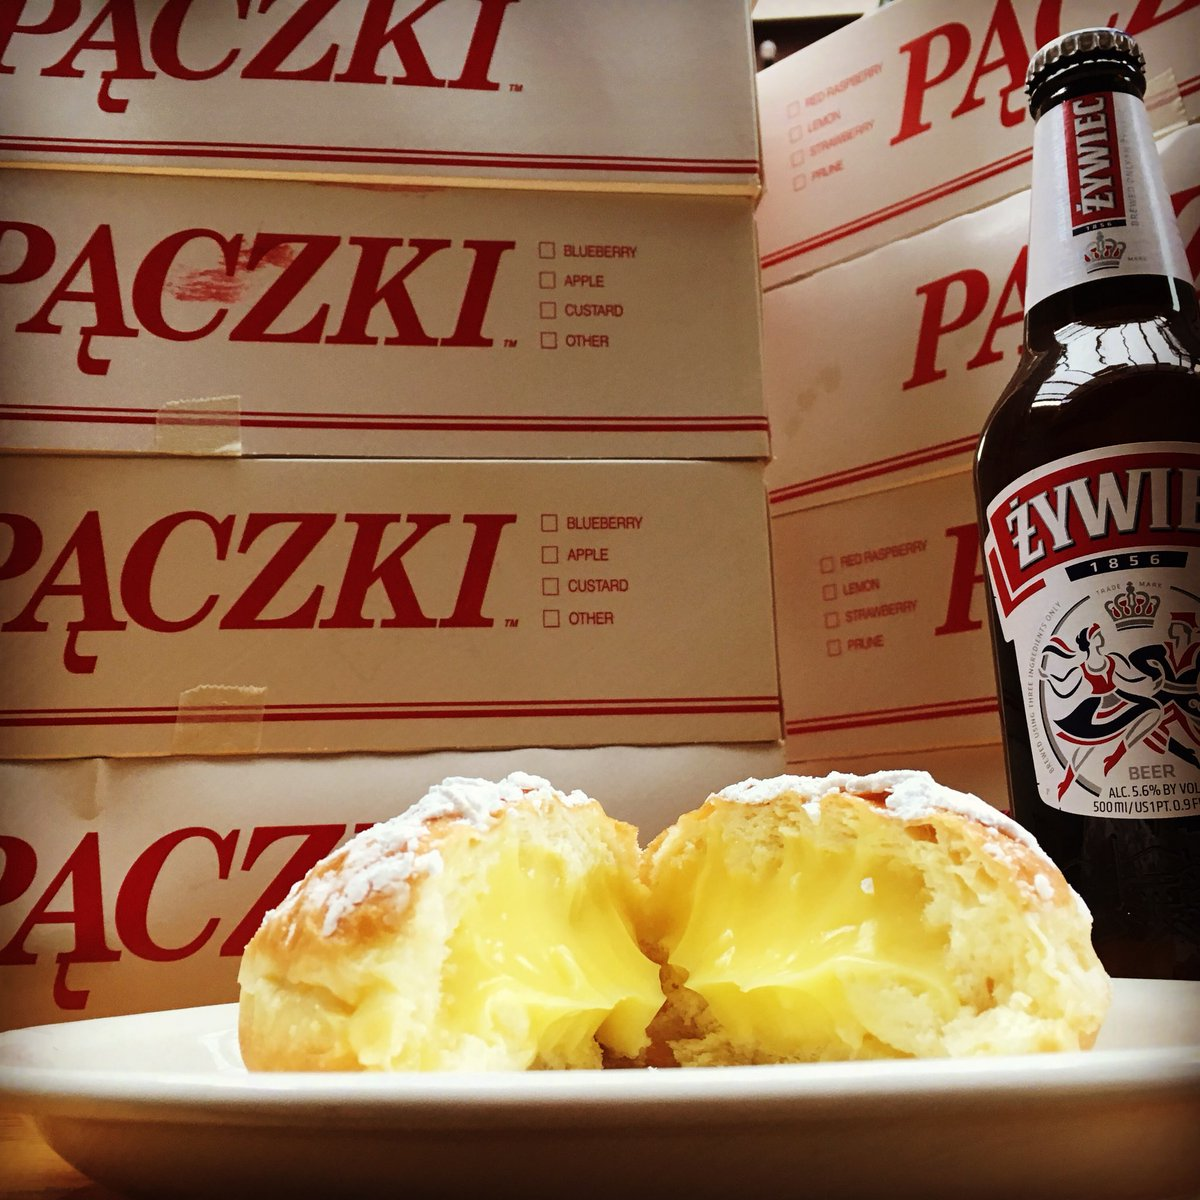 They're here! Open at 4pm with free pączki and pierogi while they last  #fattuesday #Pączki #PączkiDay <br>http://pic.twitter.com/WAAy0pdIft